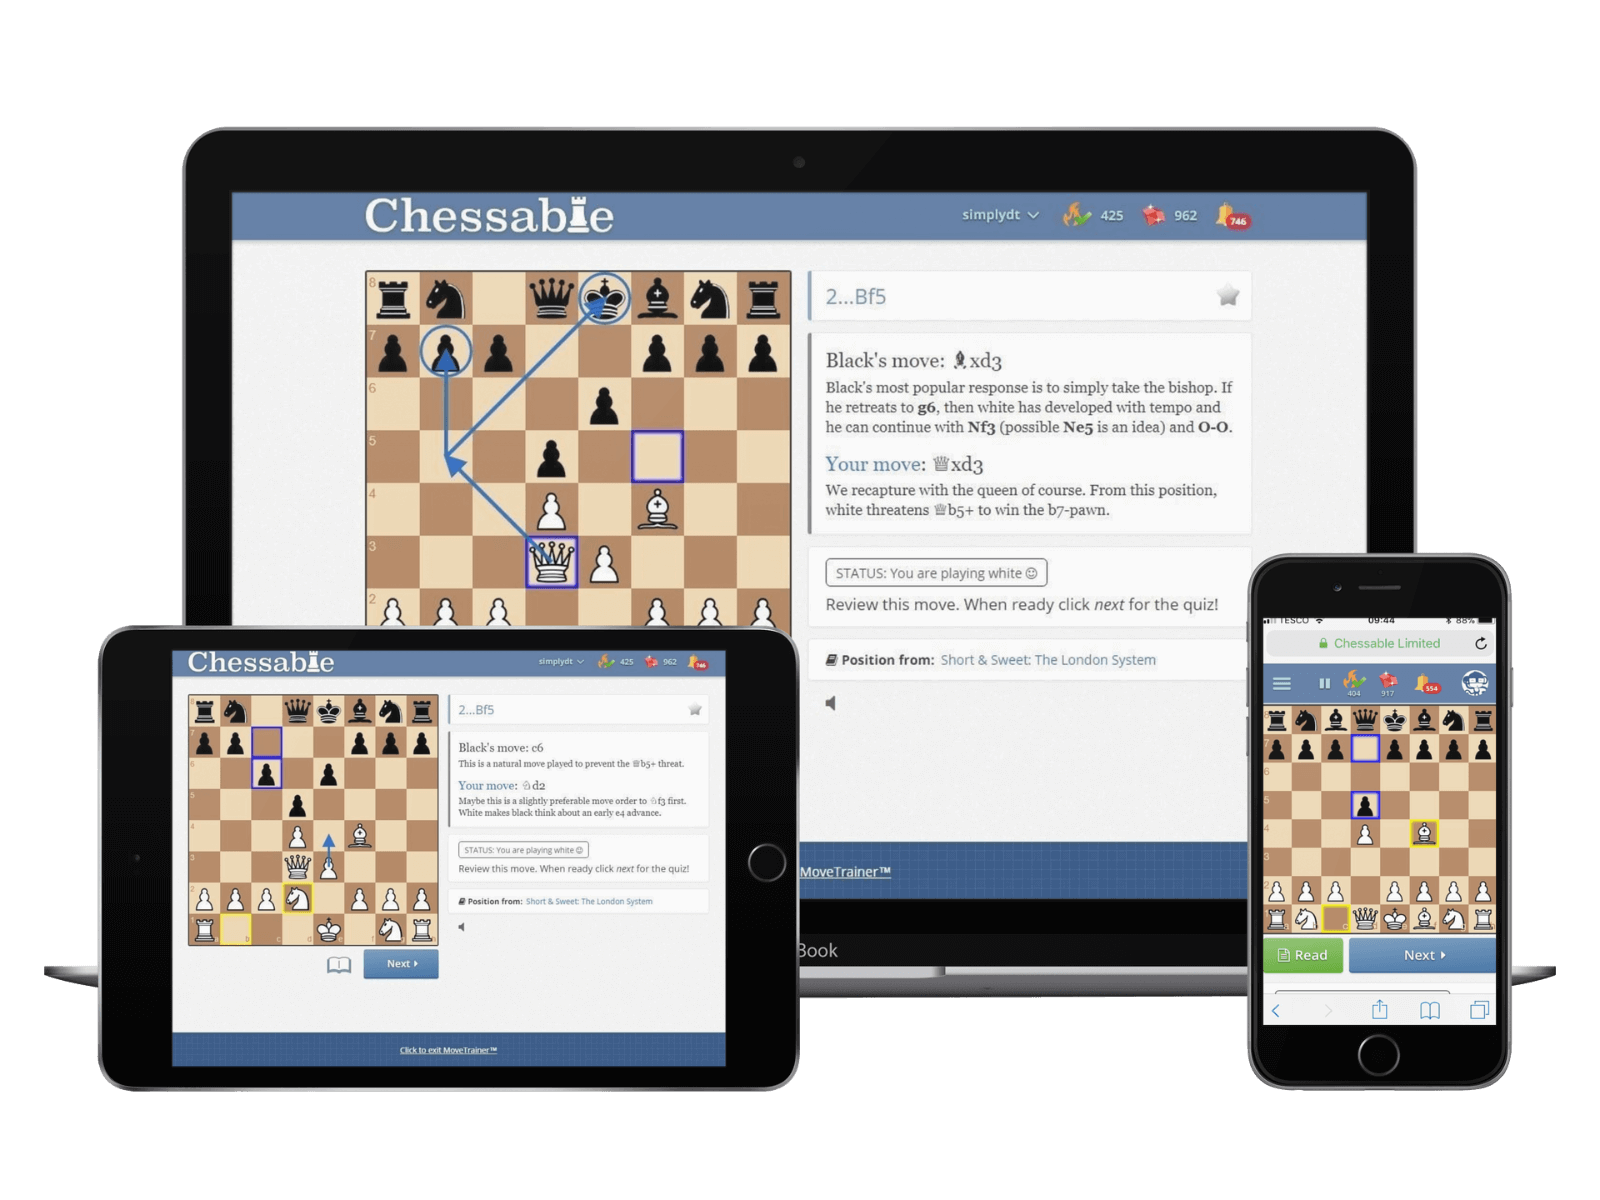 Learn chess online with MoveTrainer™ - Chessable com